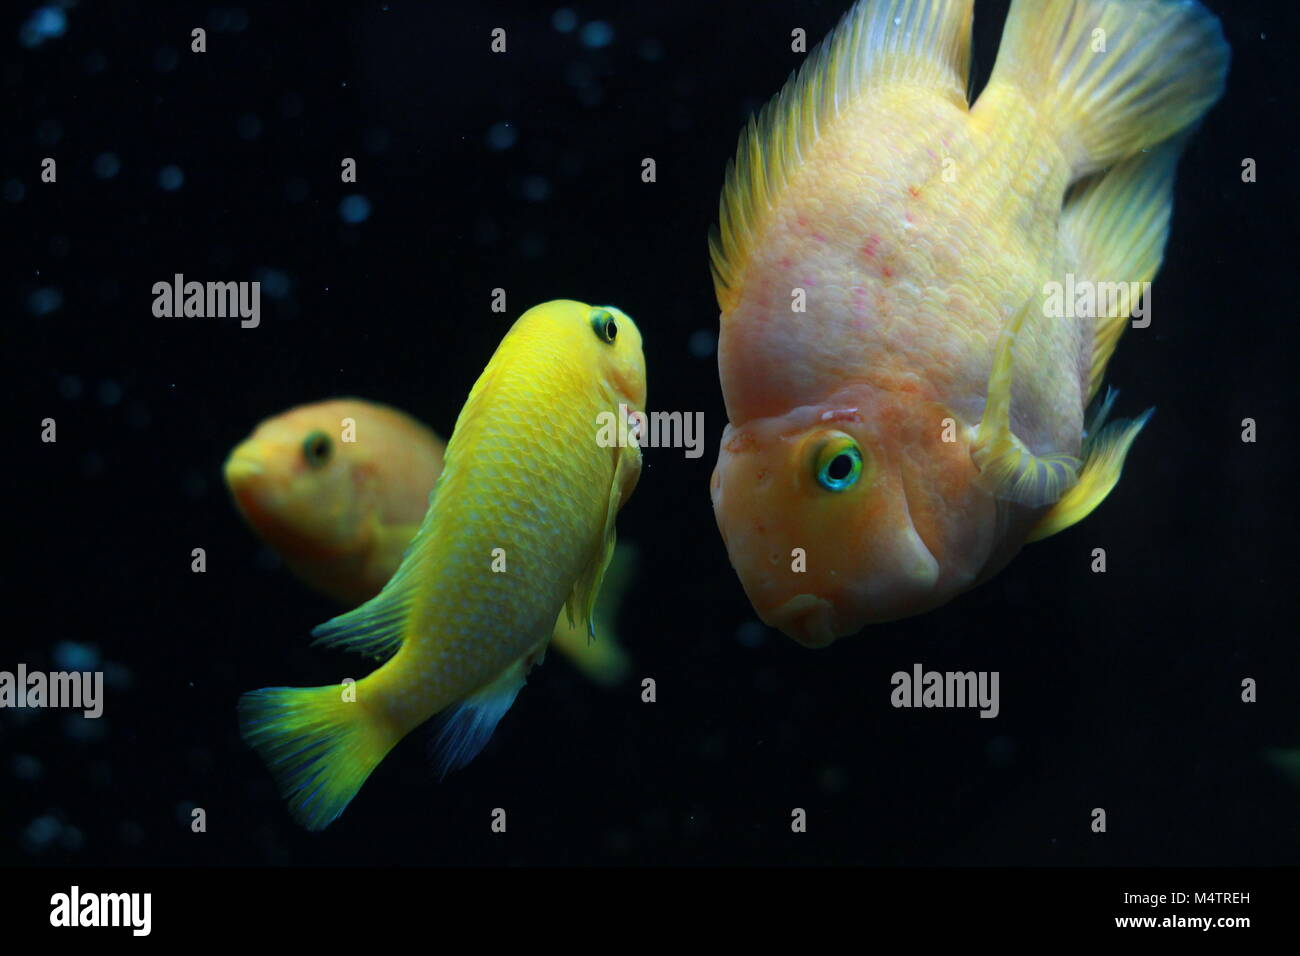 Orange Parrot Fish In Aquarium Stock Photos & Orange Parrot Fish In ...